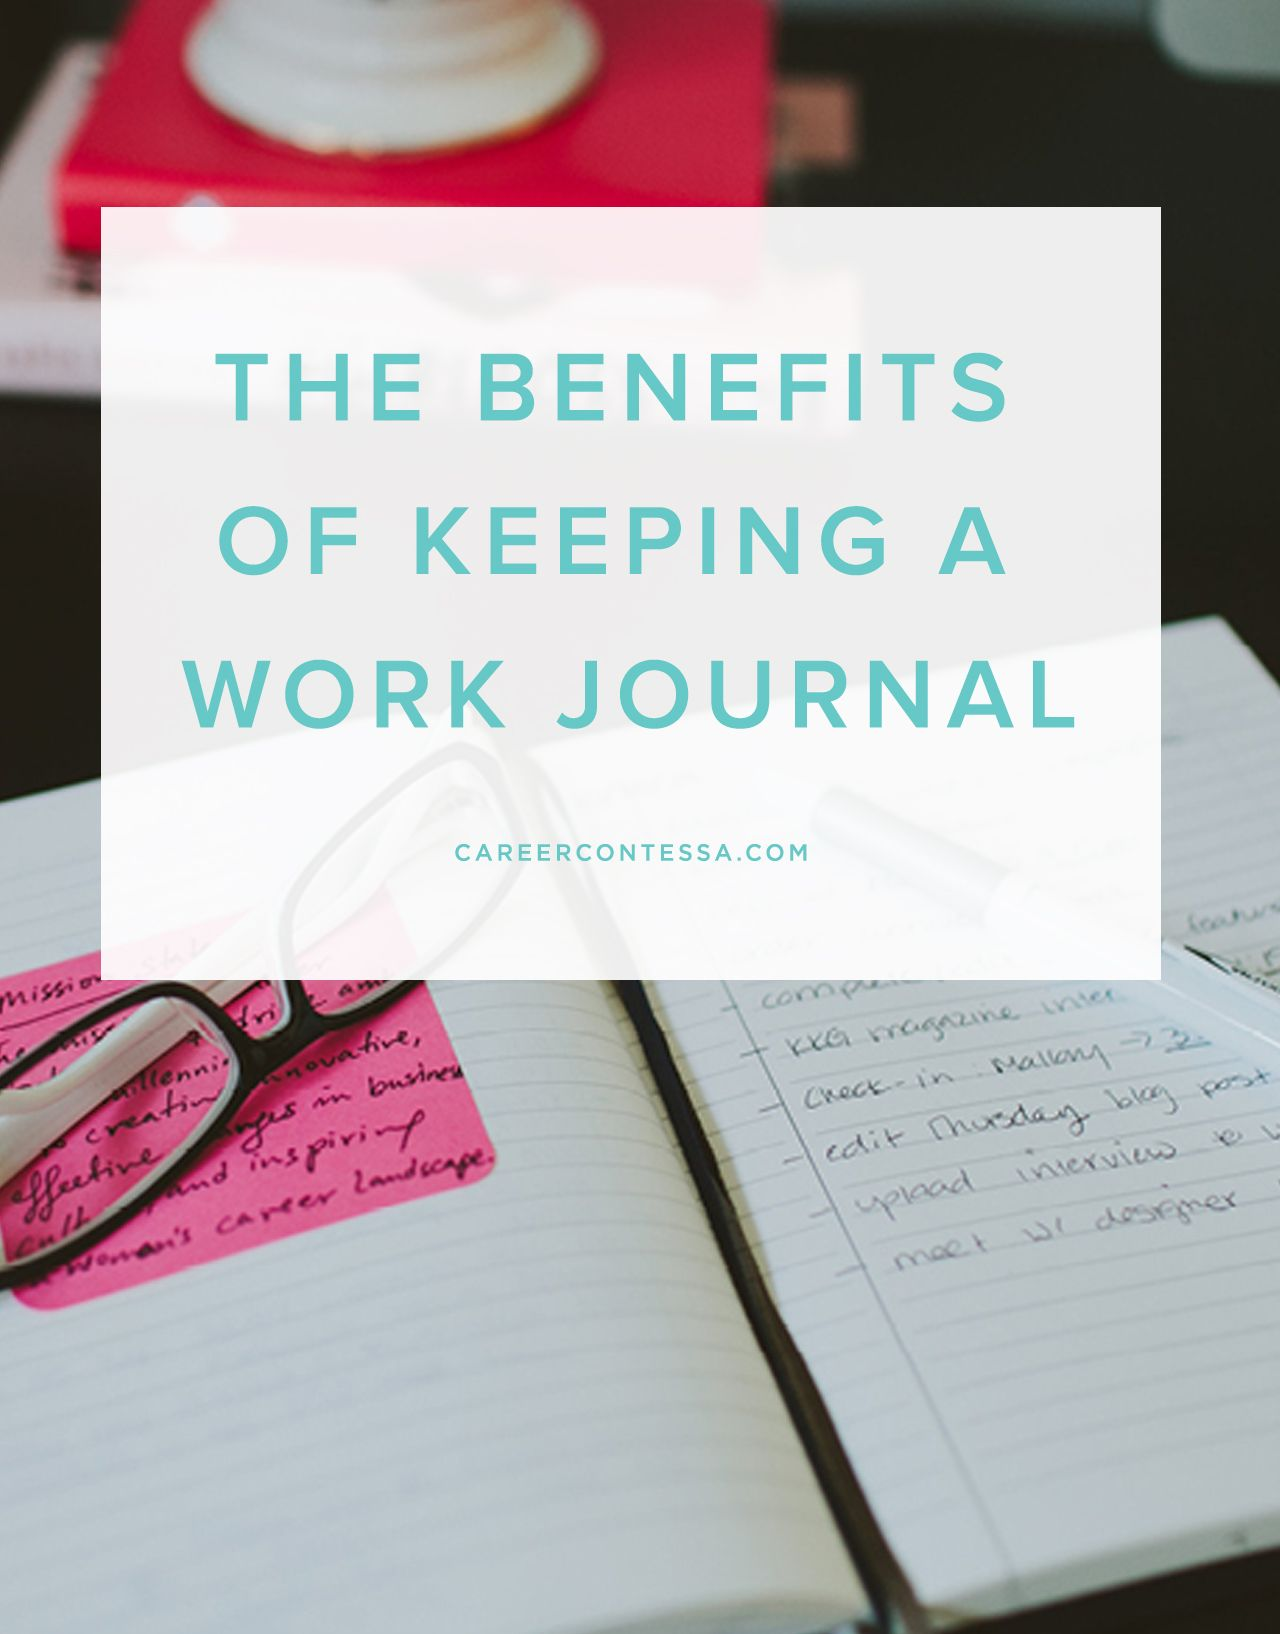 the benefits of keeping a work journal the office we and track here s why keeping a career journal can help you get ahead at the office